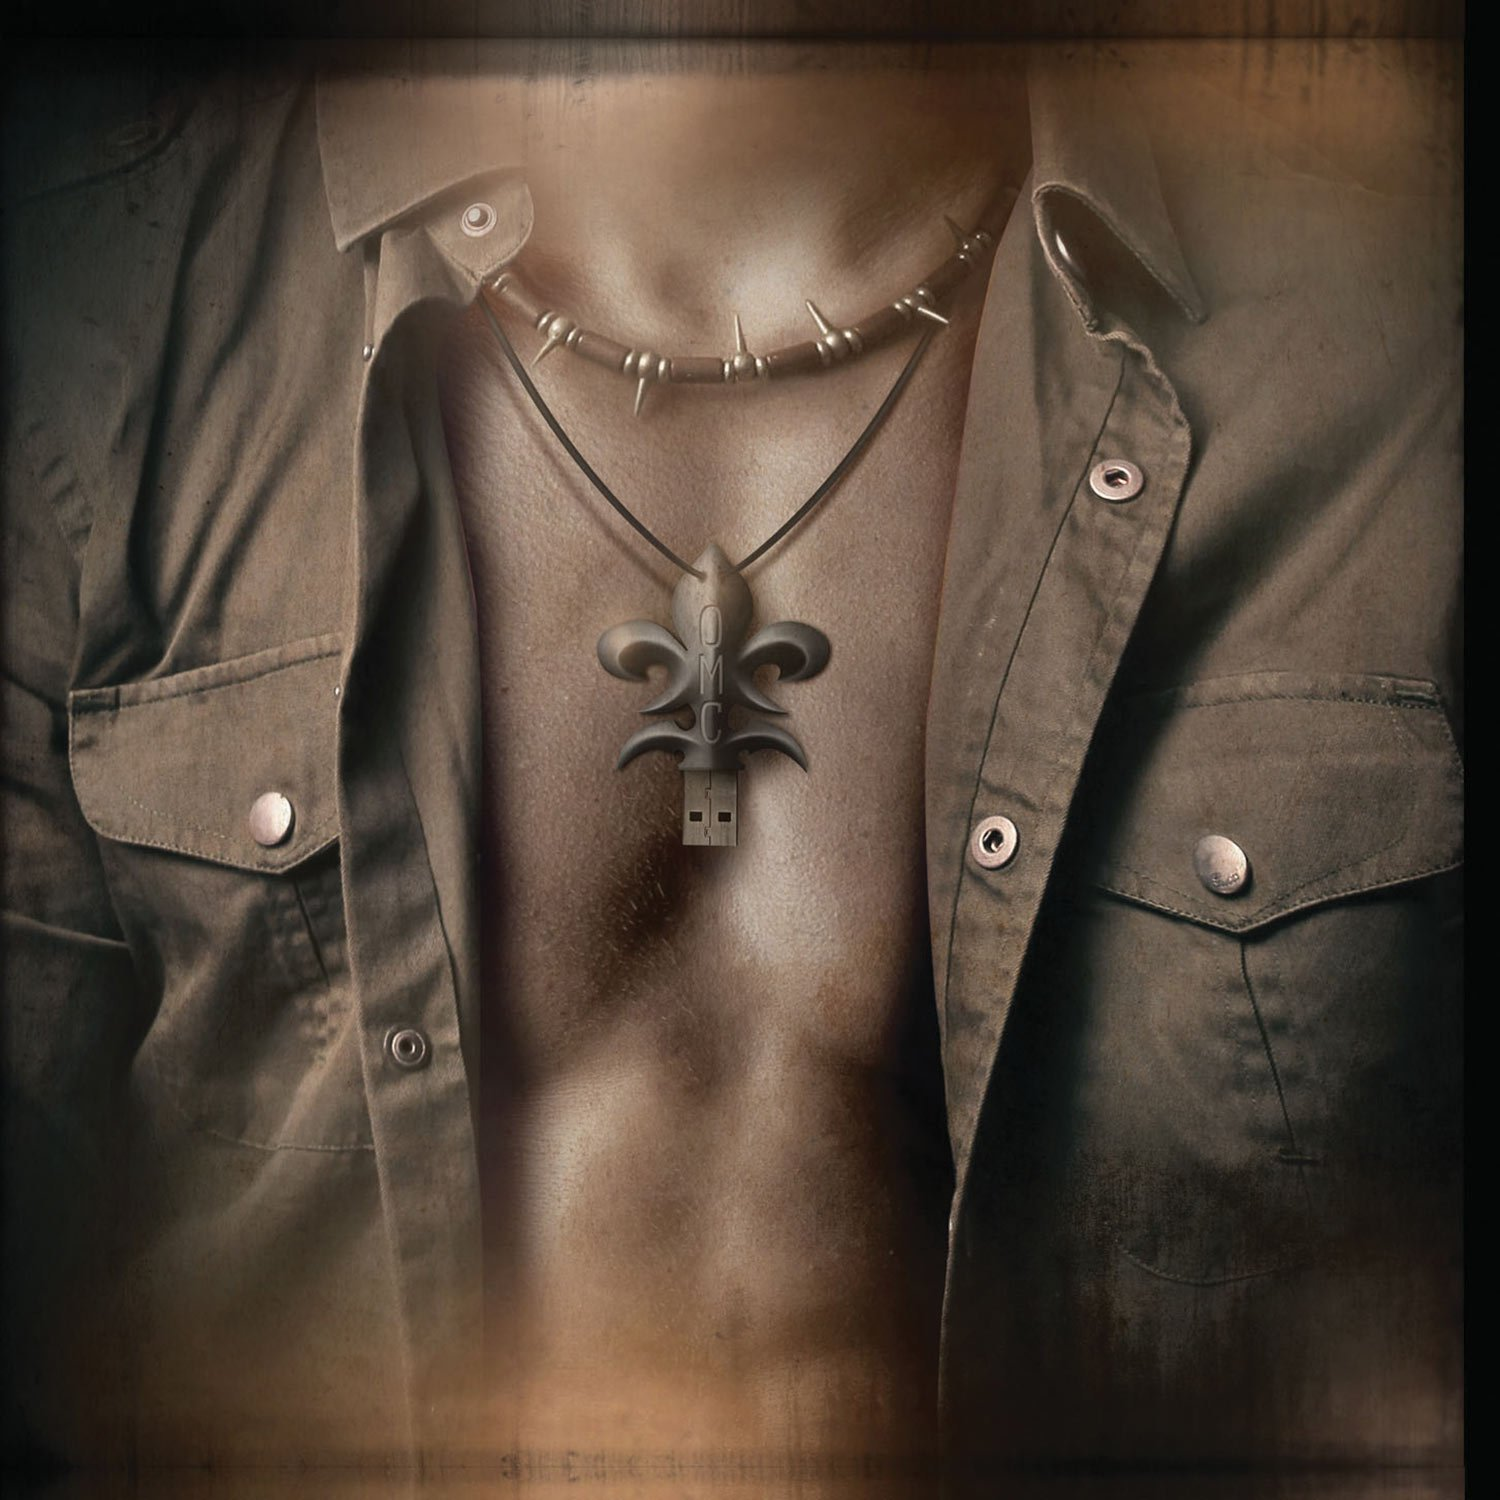 Operation: Mindcrime – The Key (2015)